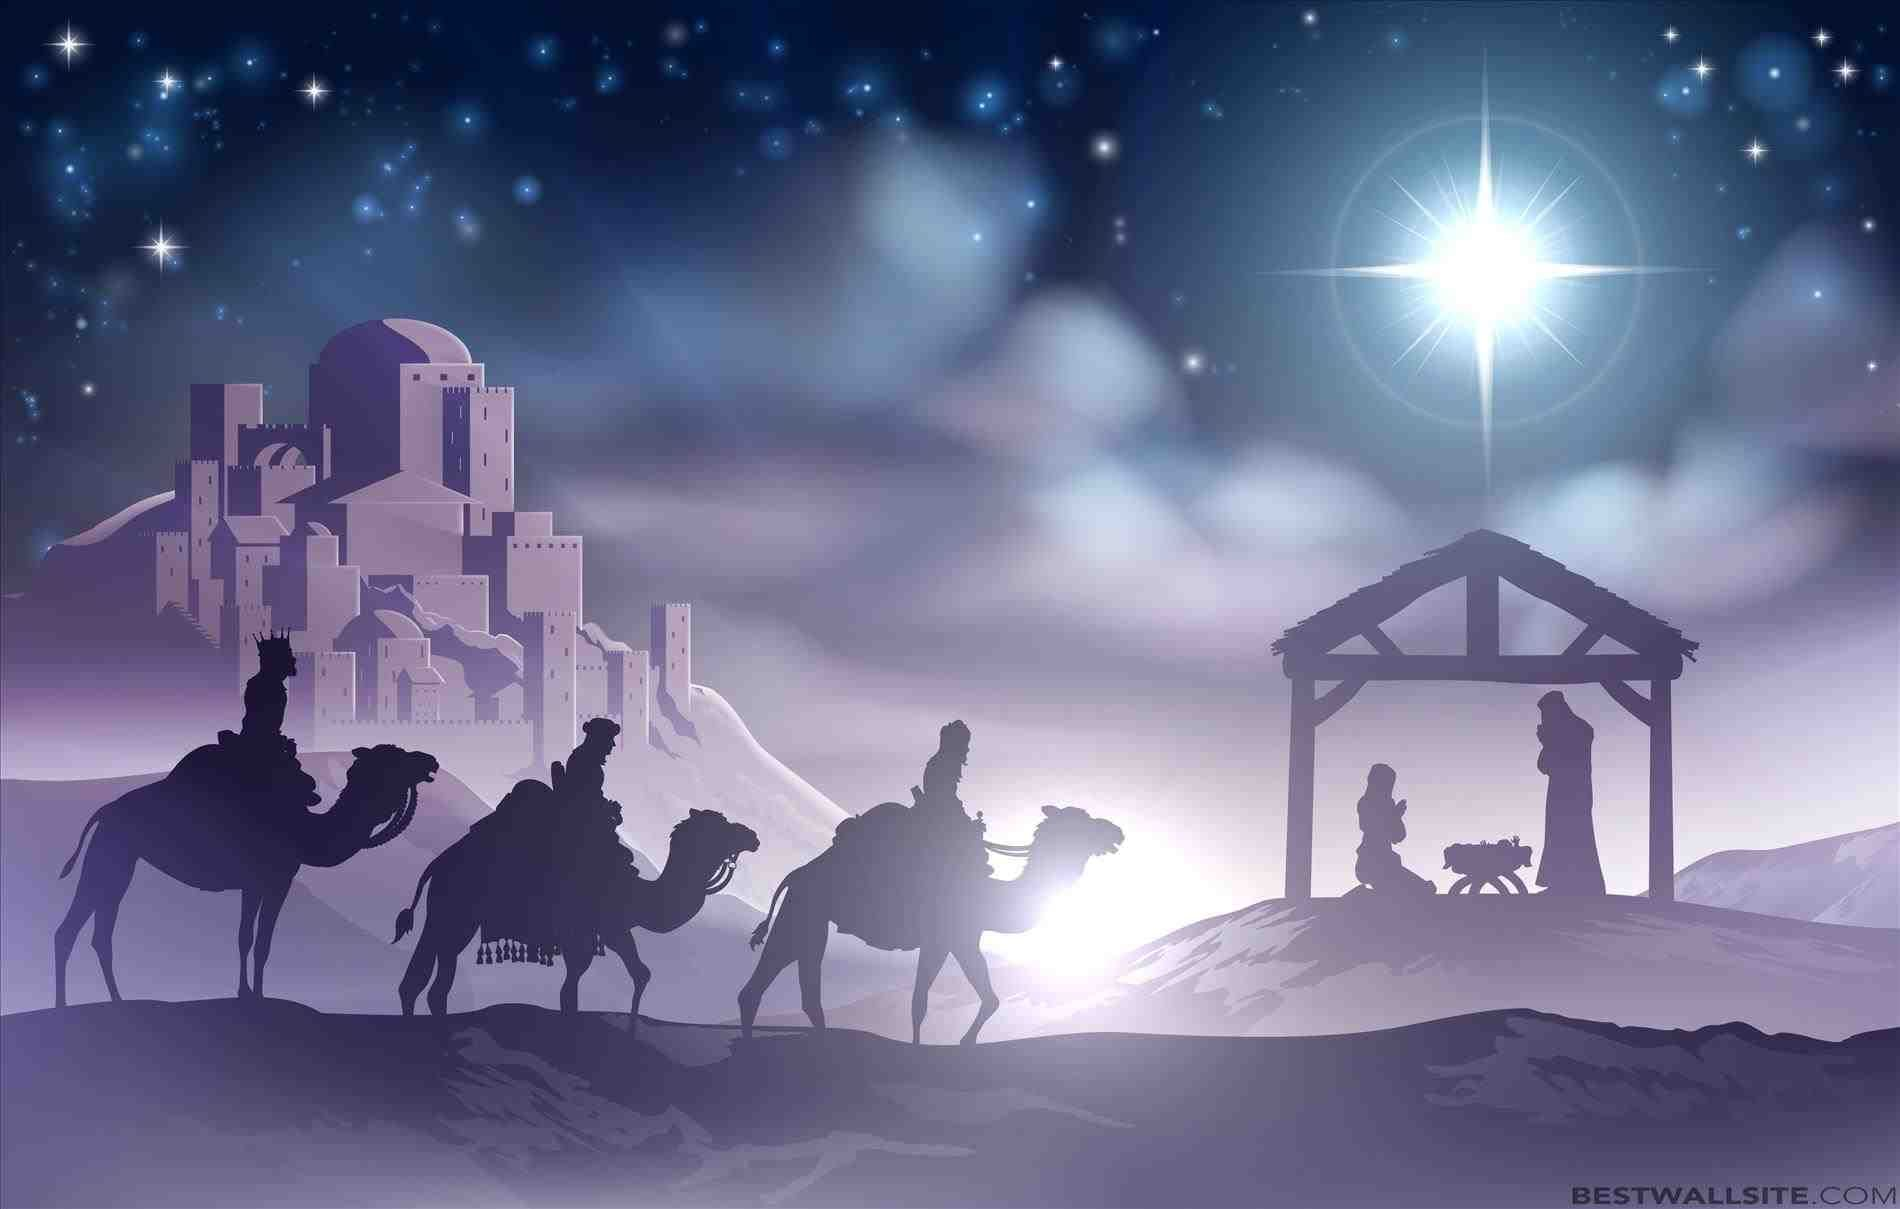 New Post Christmas Nativity Wallpaper Hd Trendingchemineewebsite